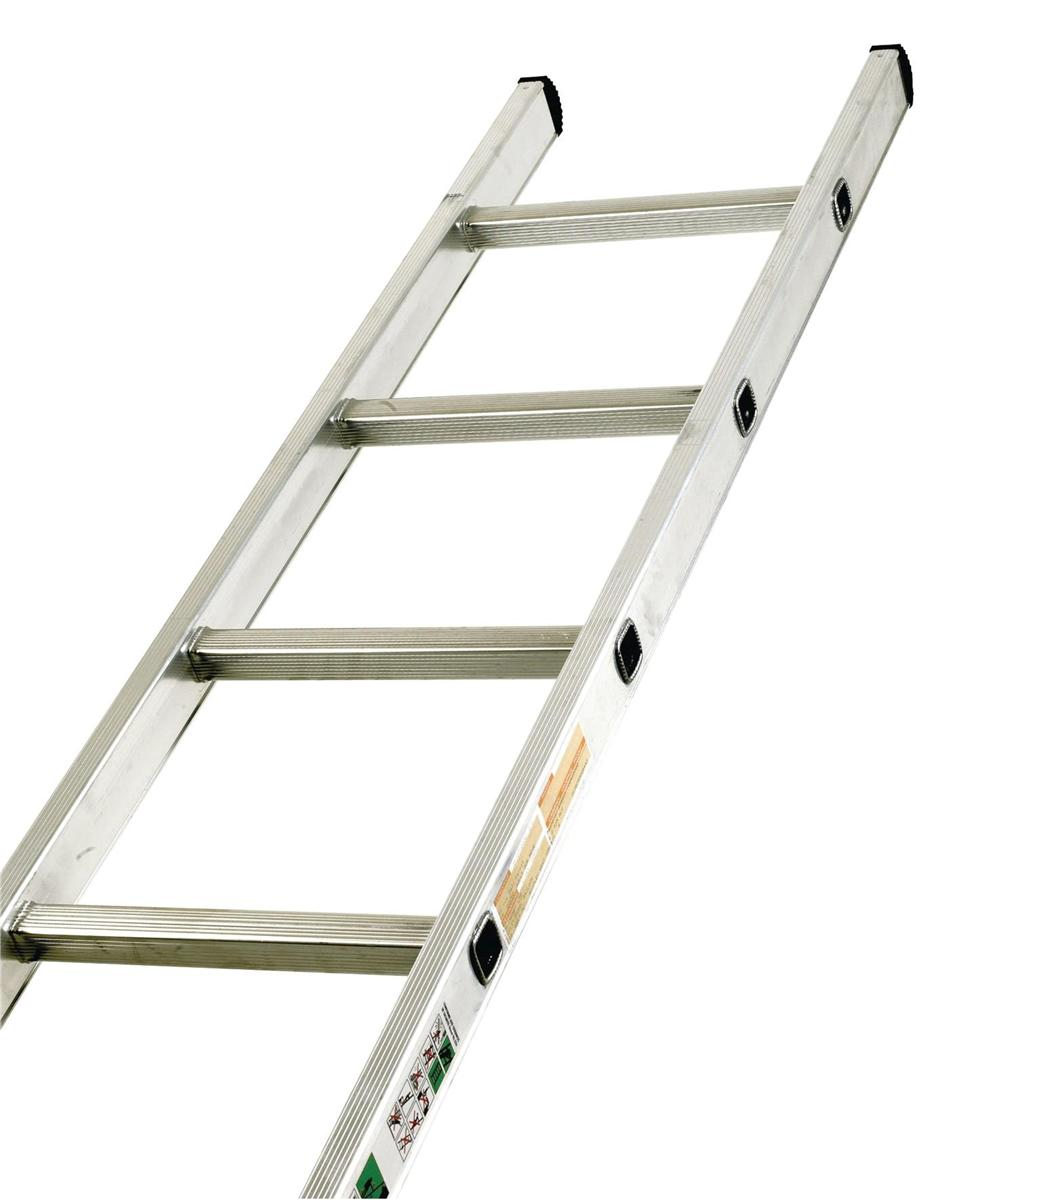 Image for Aluminium Ladder Single Section 16 Rungs